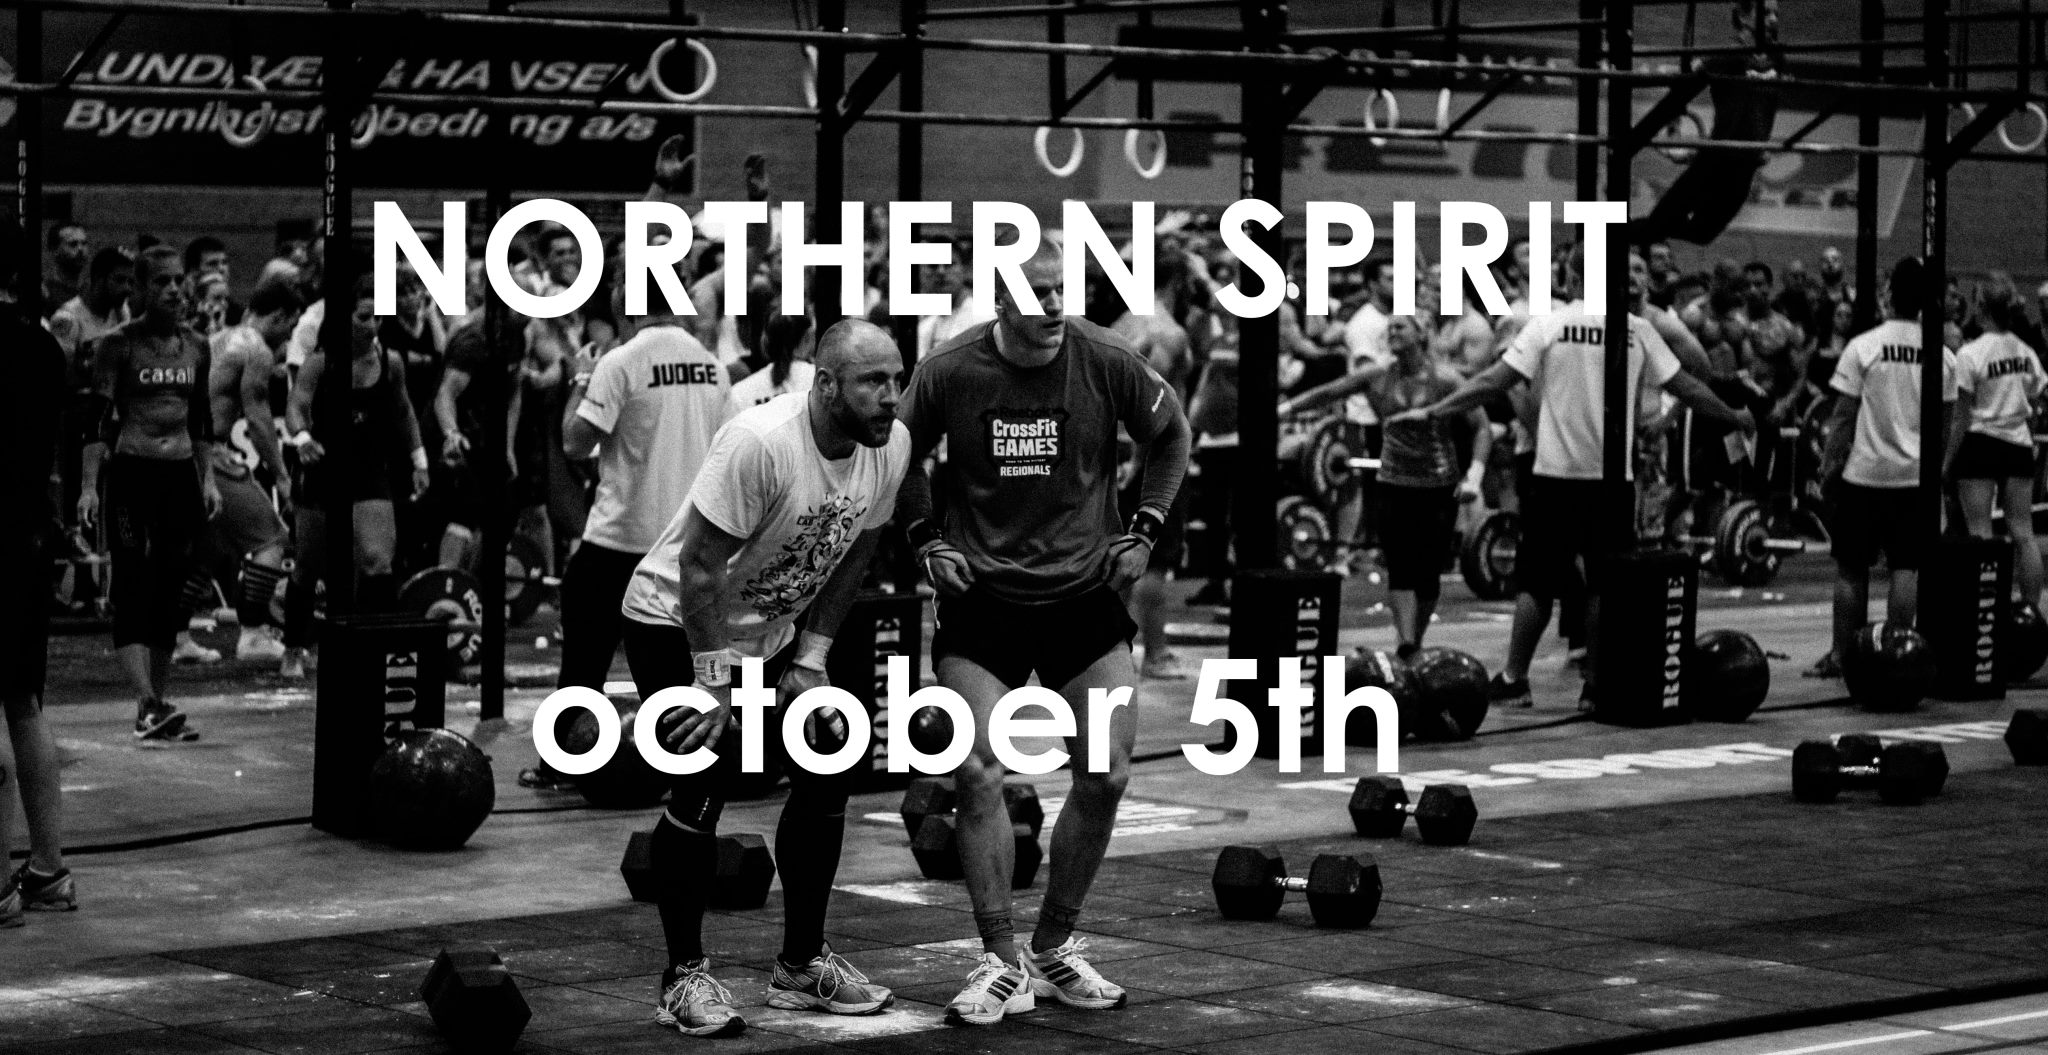 Northern Spirit